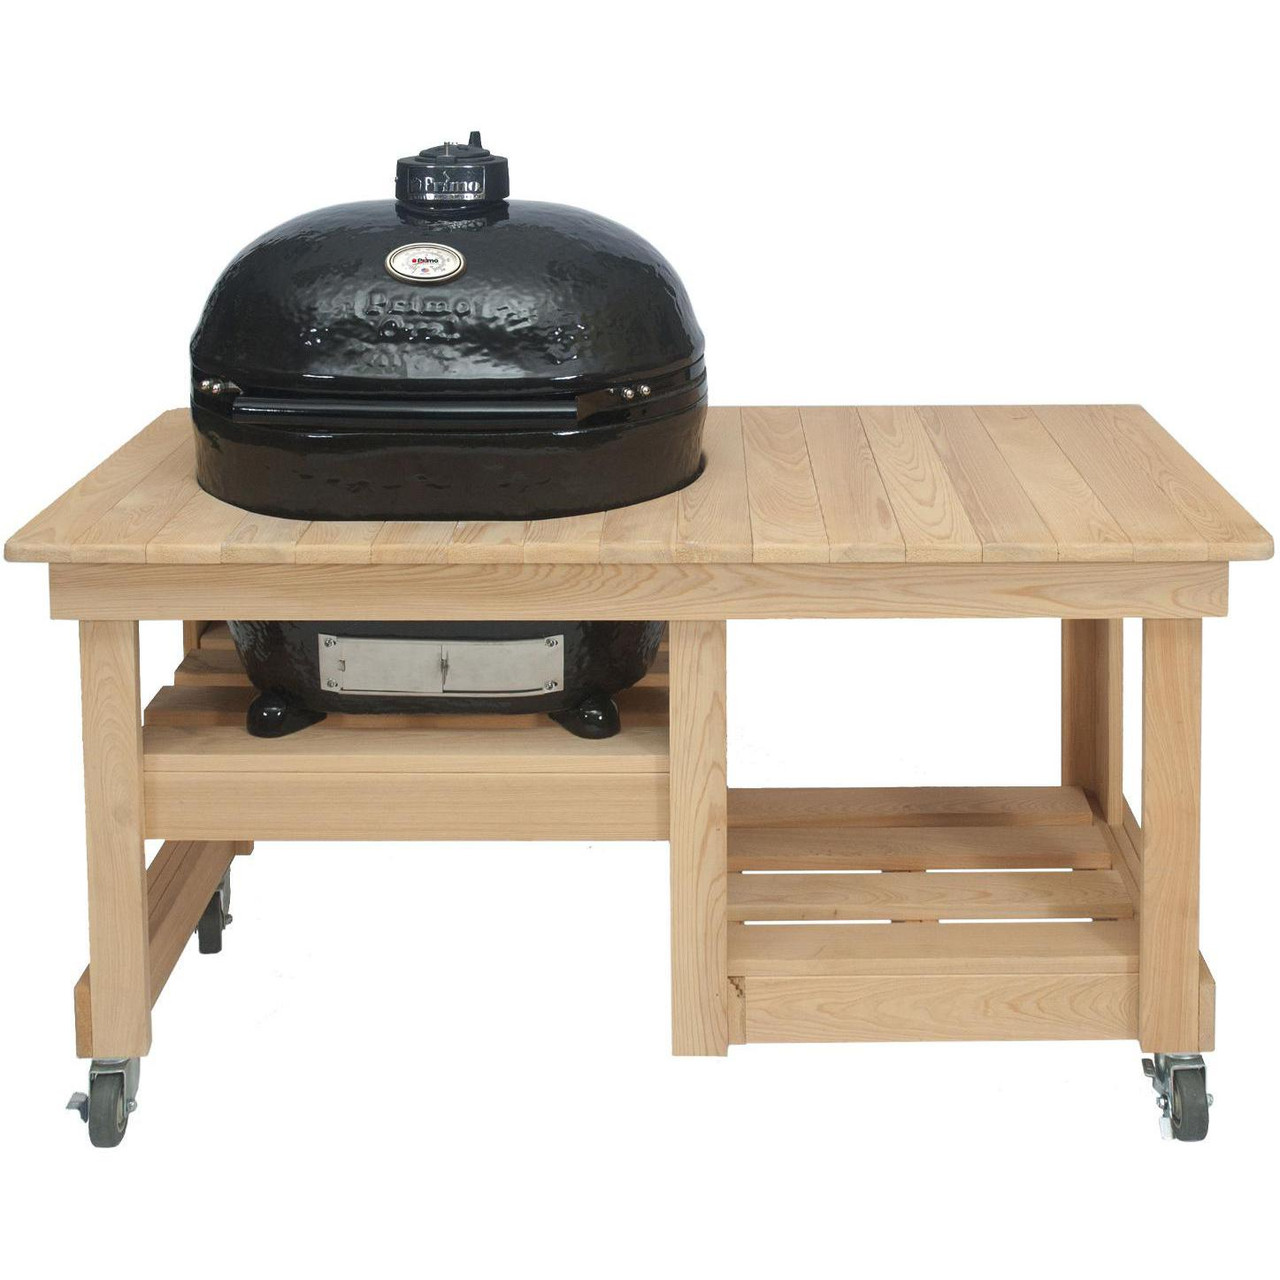 Primo Grill Oval XL 400 with Cypress Counter Top Table - Ozone ...